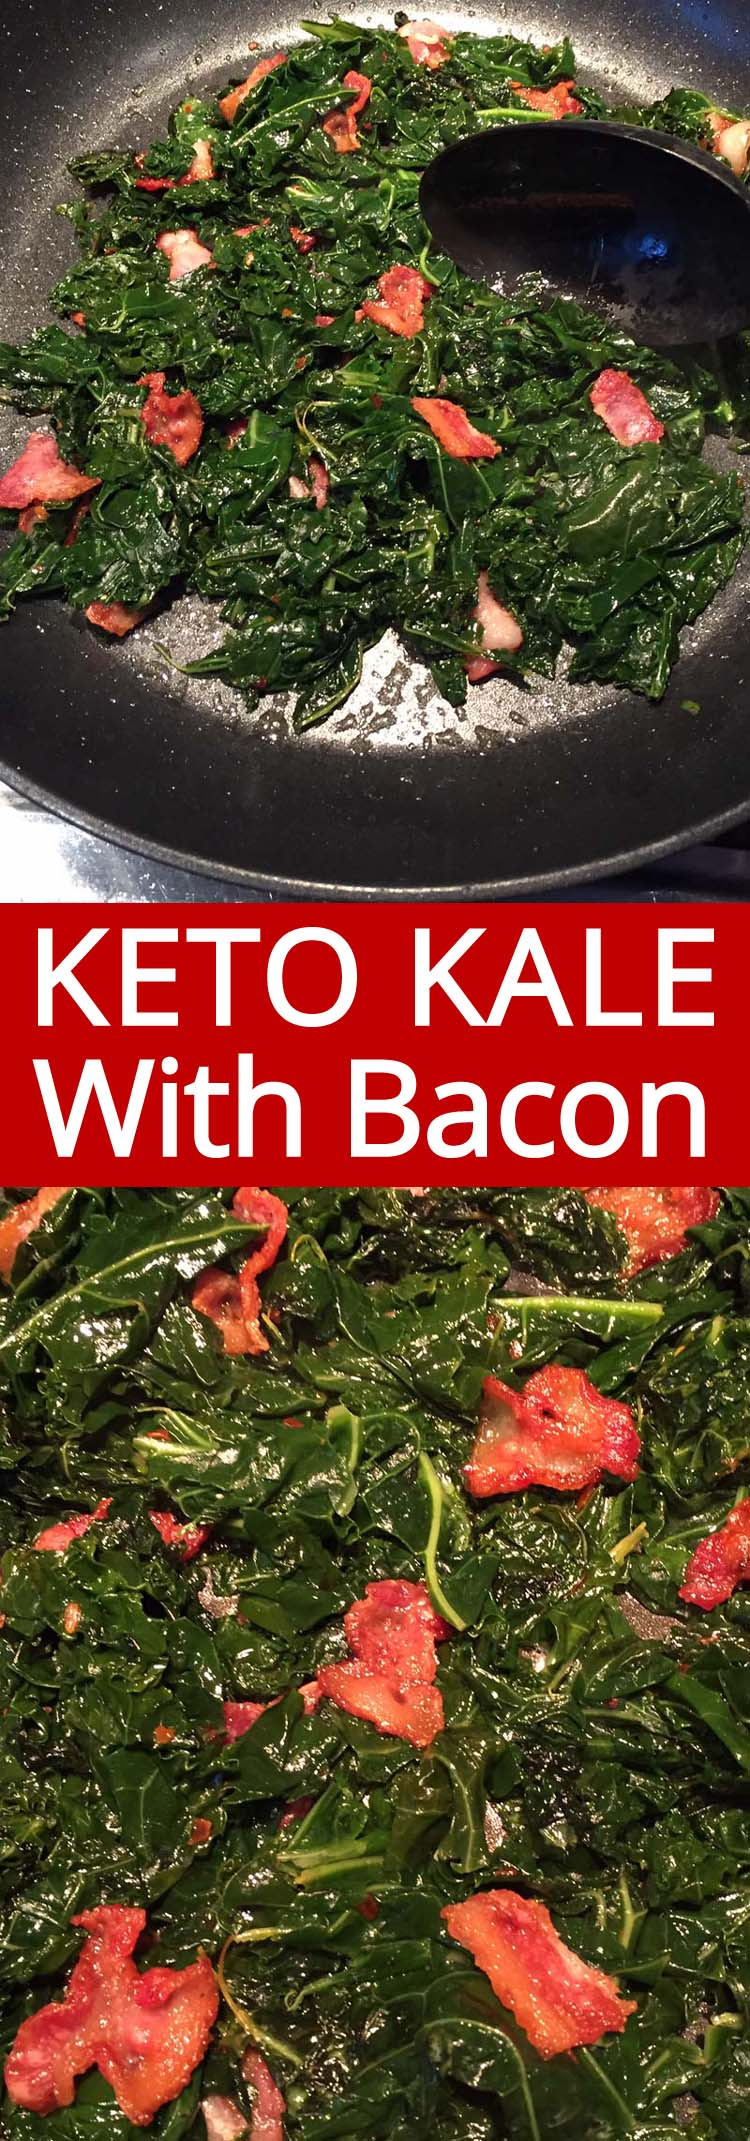 This sauteed kale with bacon is amazing! Perfect for keto, low-carb and gluten-free diet! So easy to make and so filling and yummy!